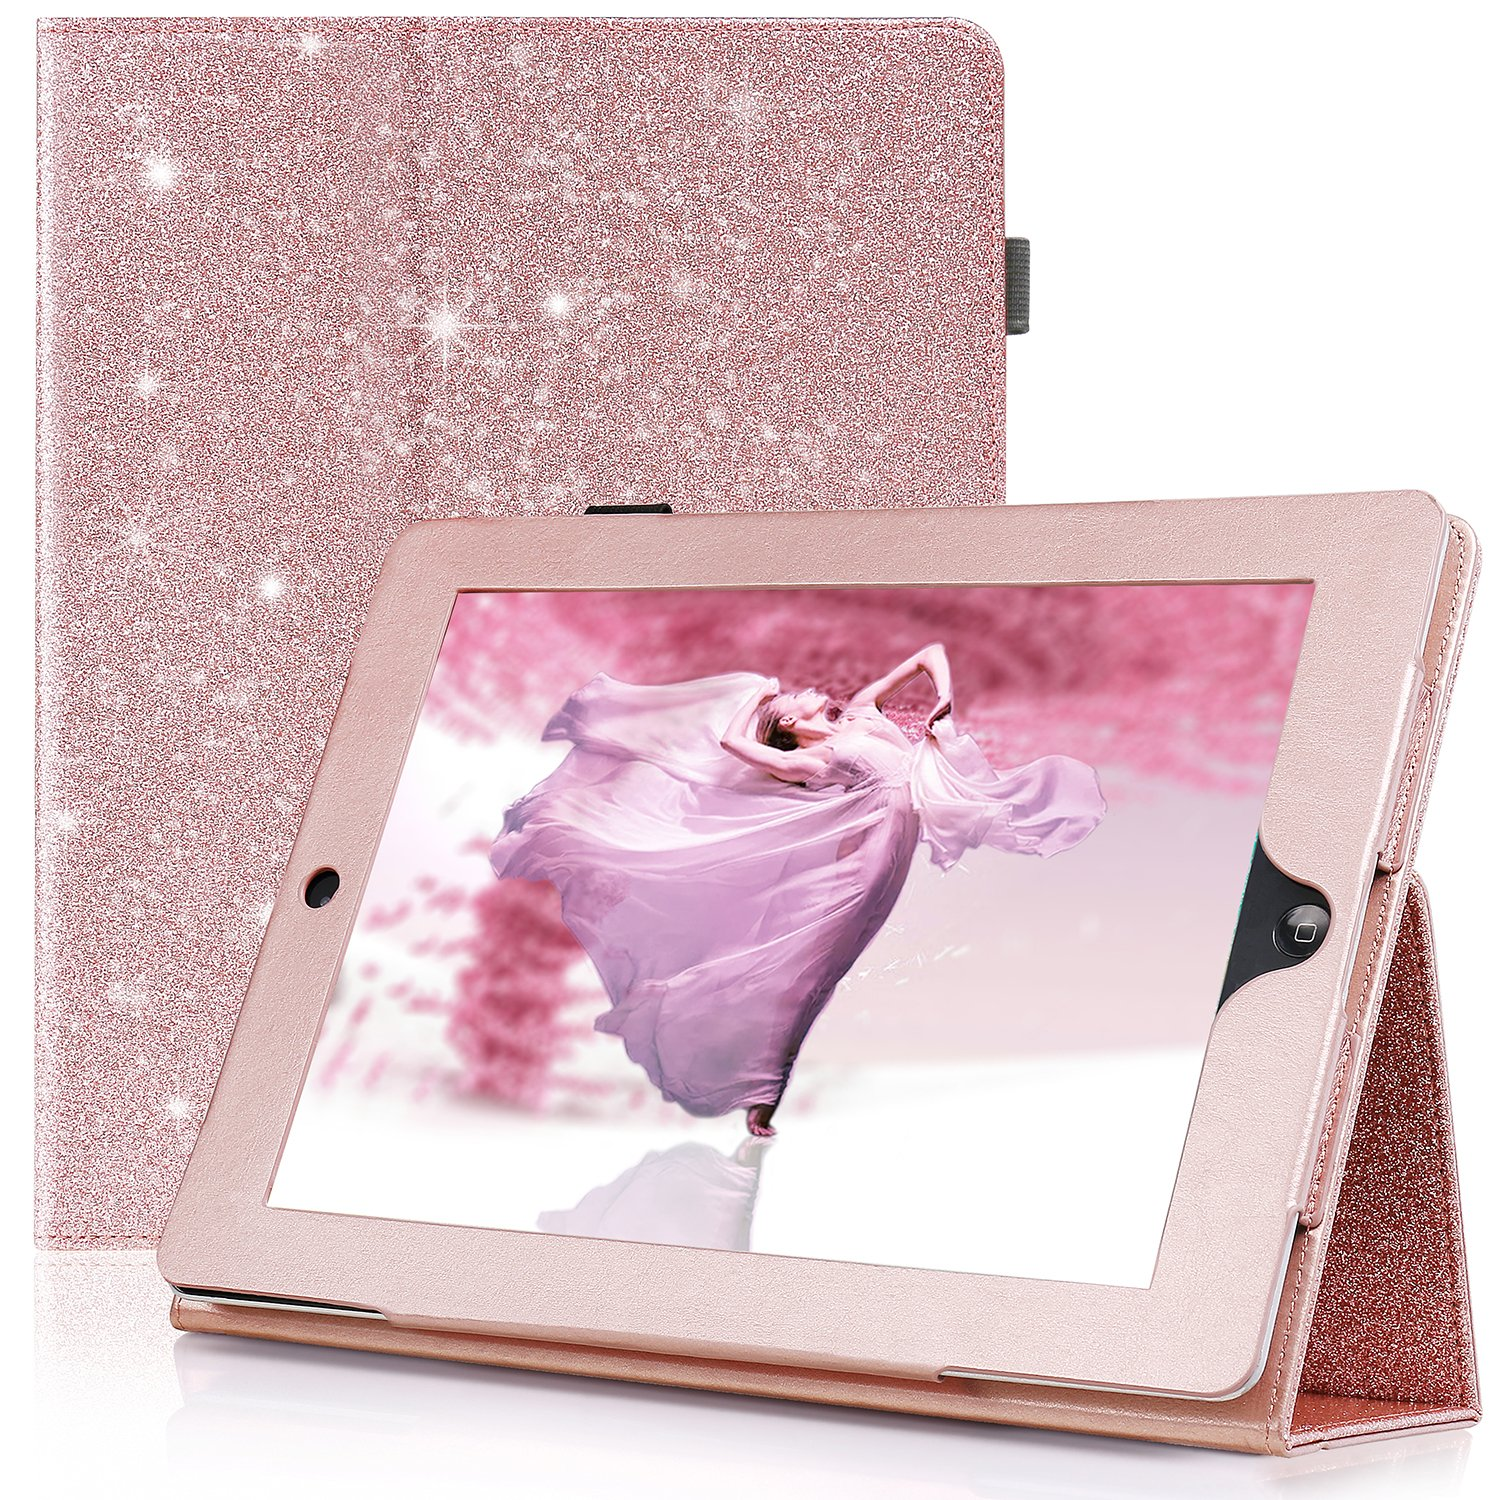 iPad 4 Case, iPad 3 Case, iPad 2 Case, Karidge PU Leather Business Smart Slim Cover with Auto Wake/Sleep Multi-Angle Viewing Stand Hand Strap Protective Case for Apple iPad 2/3/4 Case, Rose Gold